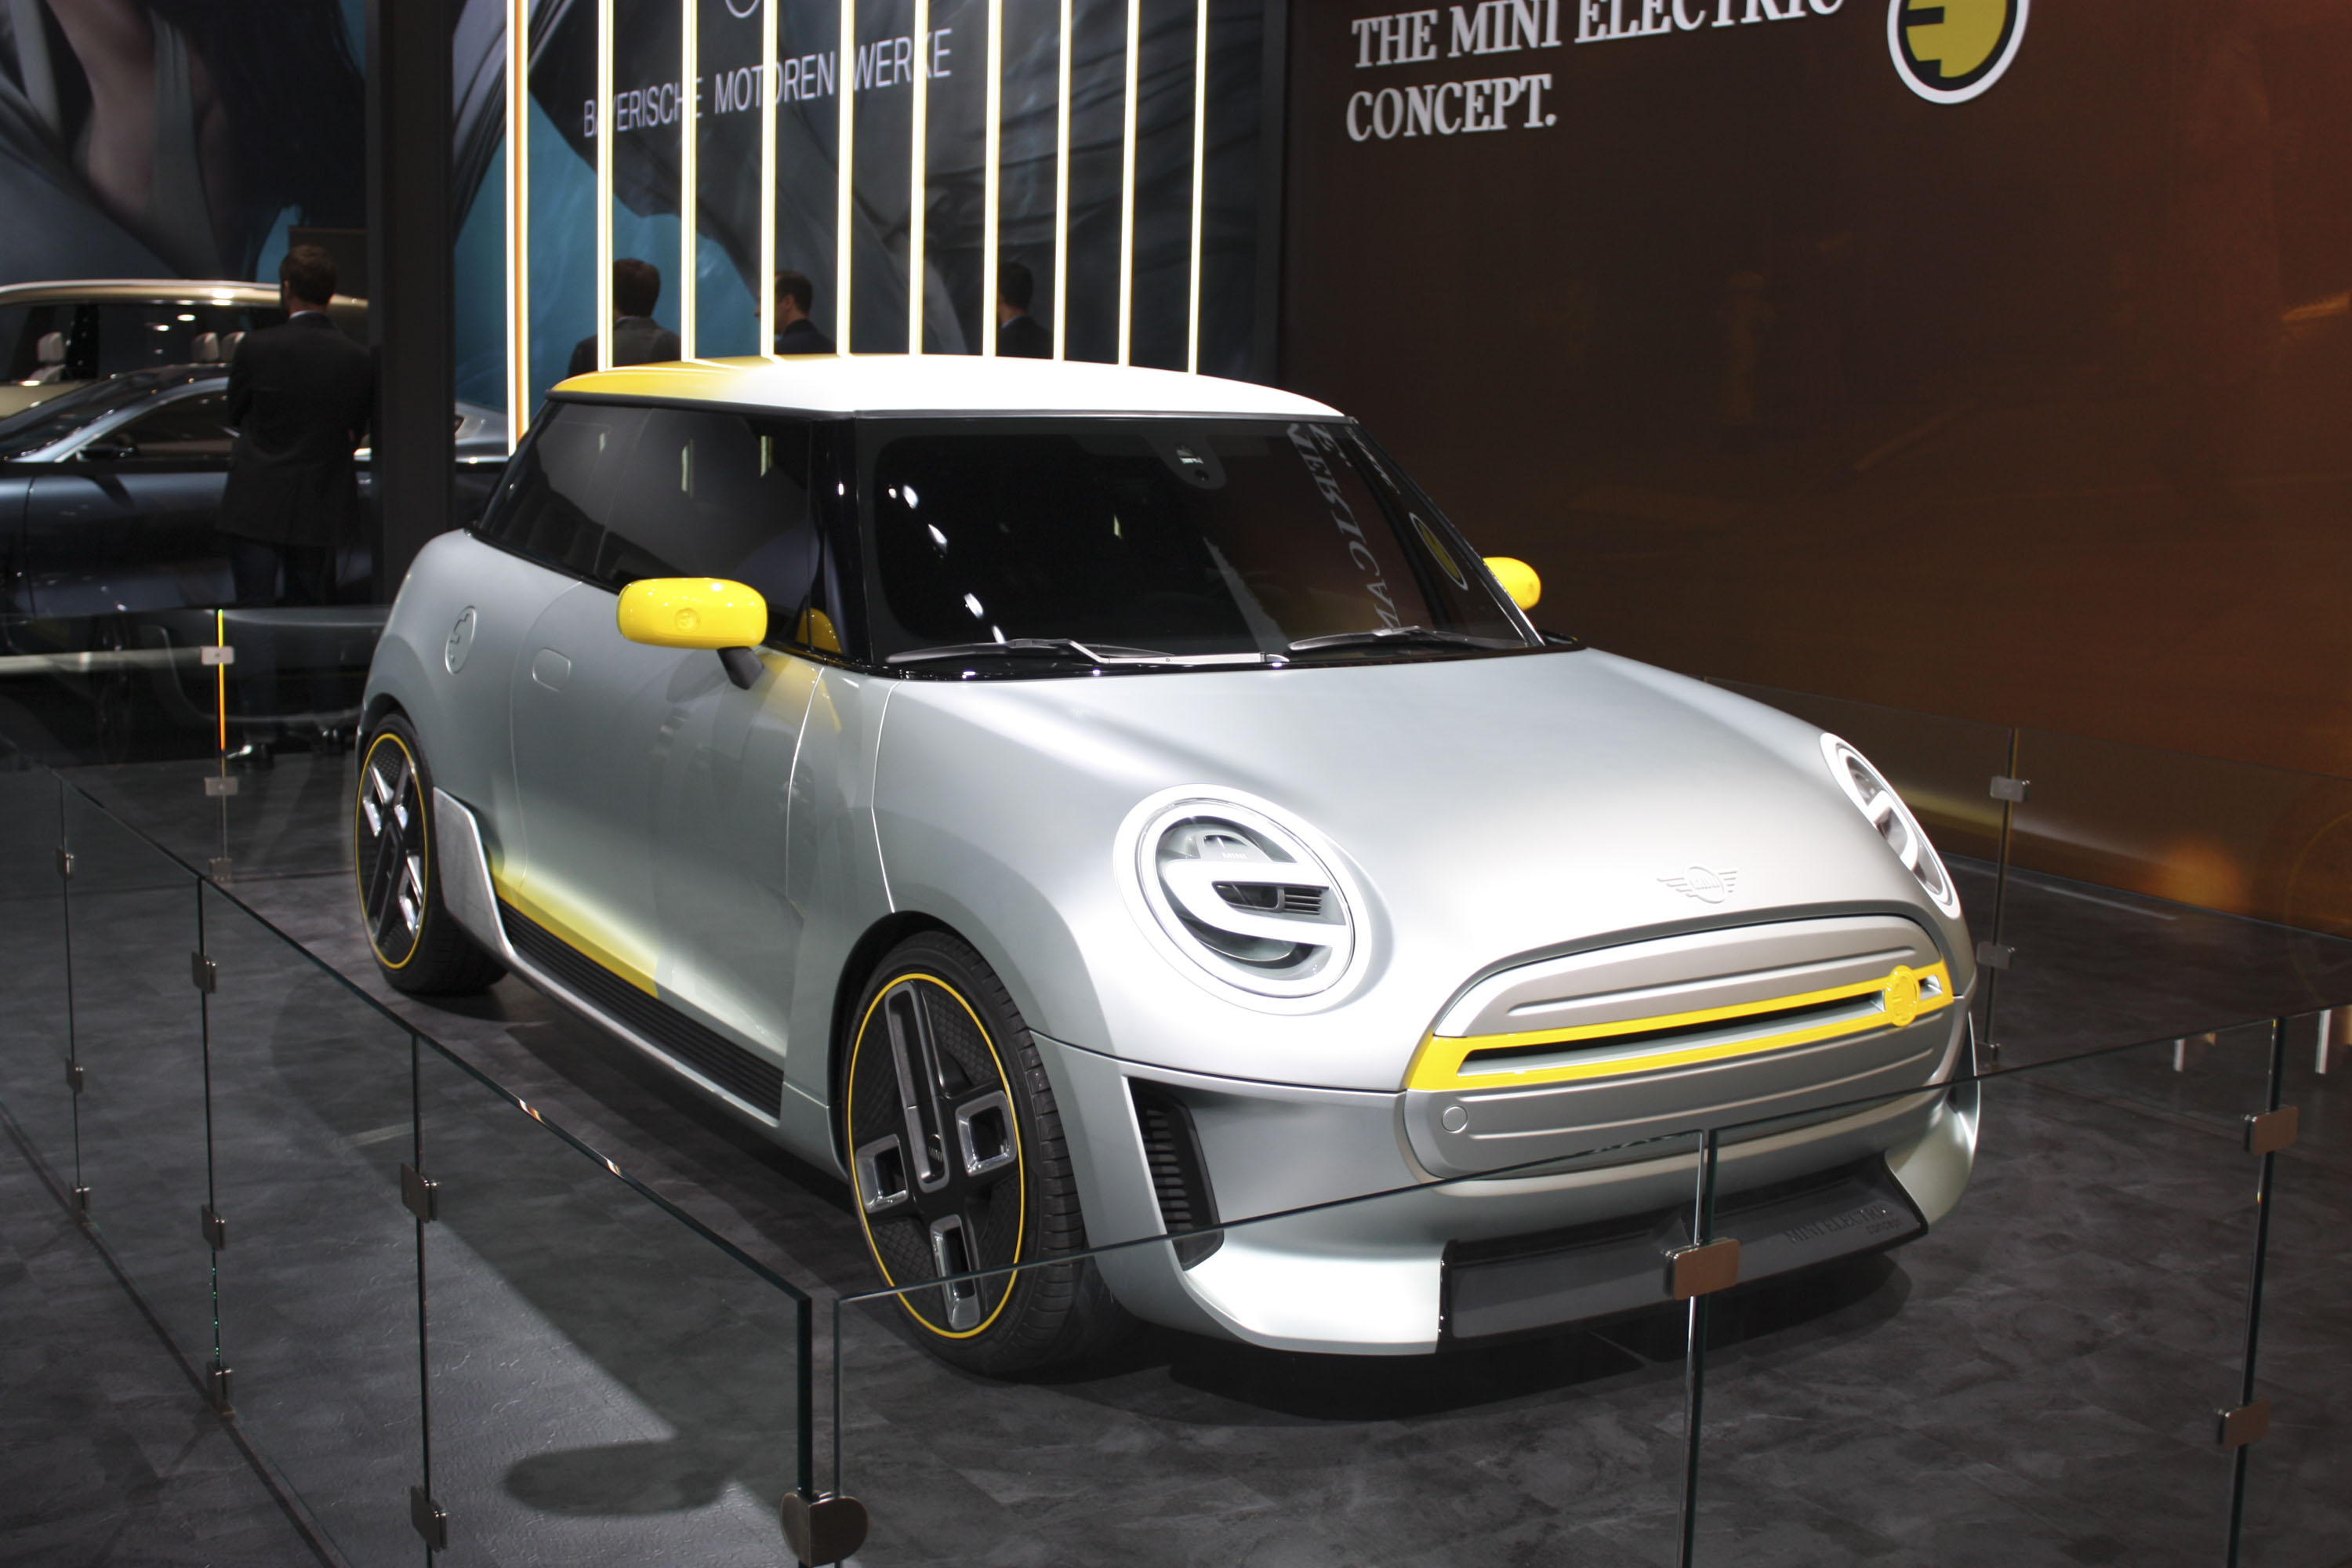 Rumor The Mini Electric Concept Could Come To Life As The Bmw I1